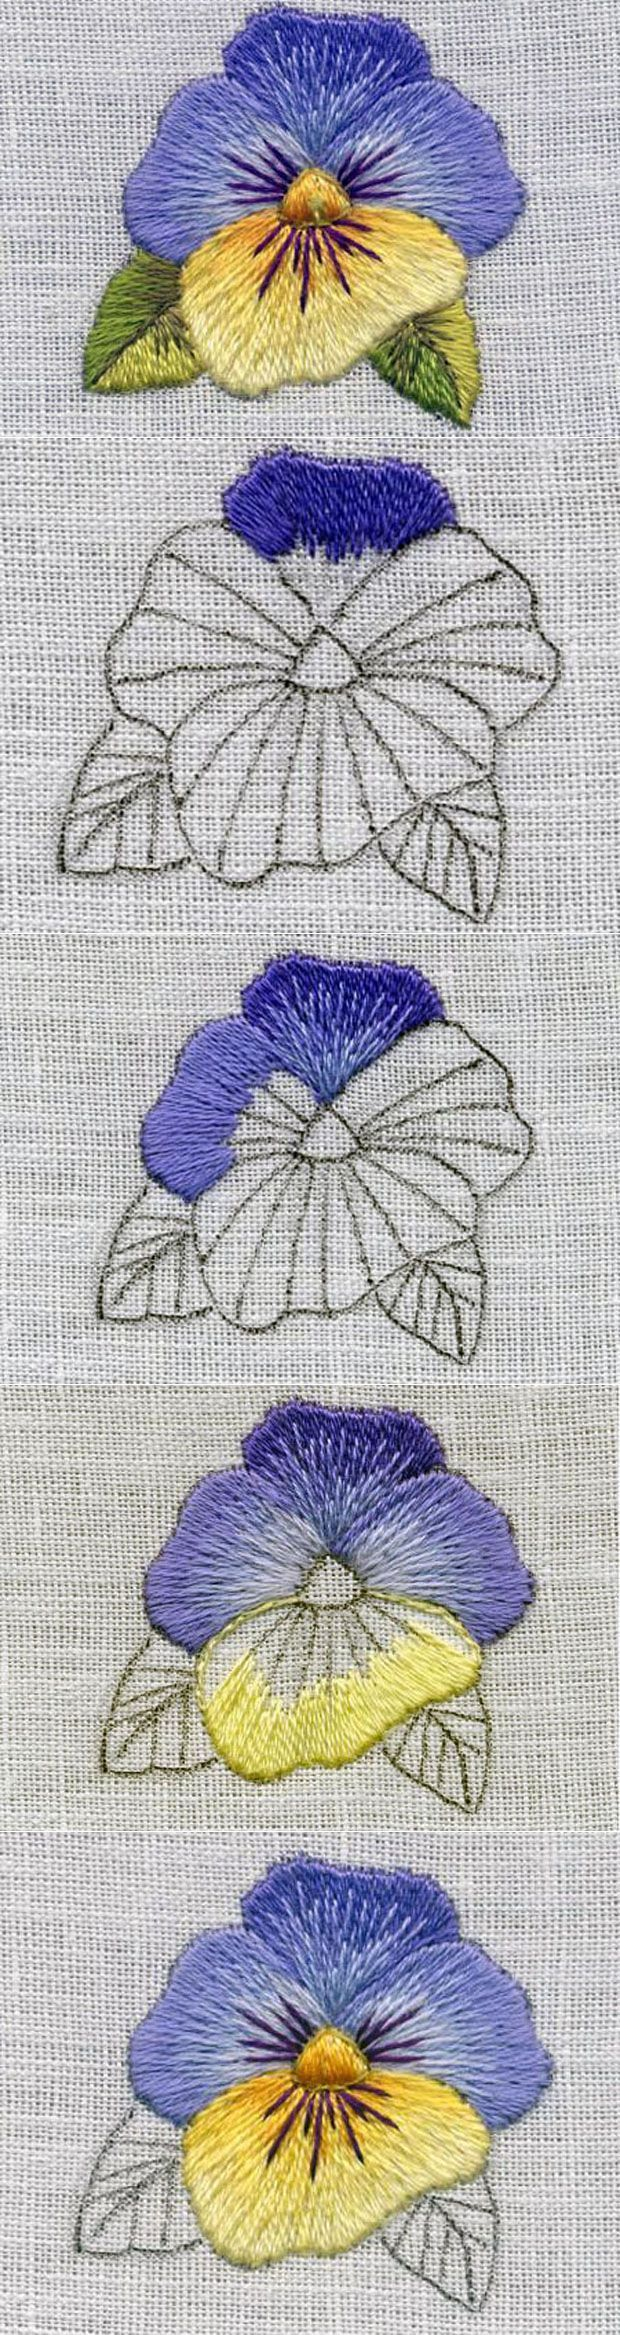 best finished embroidery images on pinterest embroidery